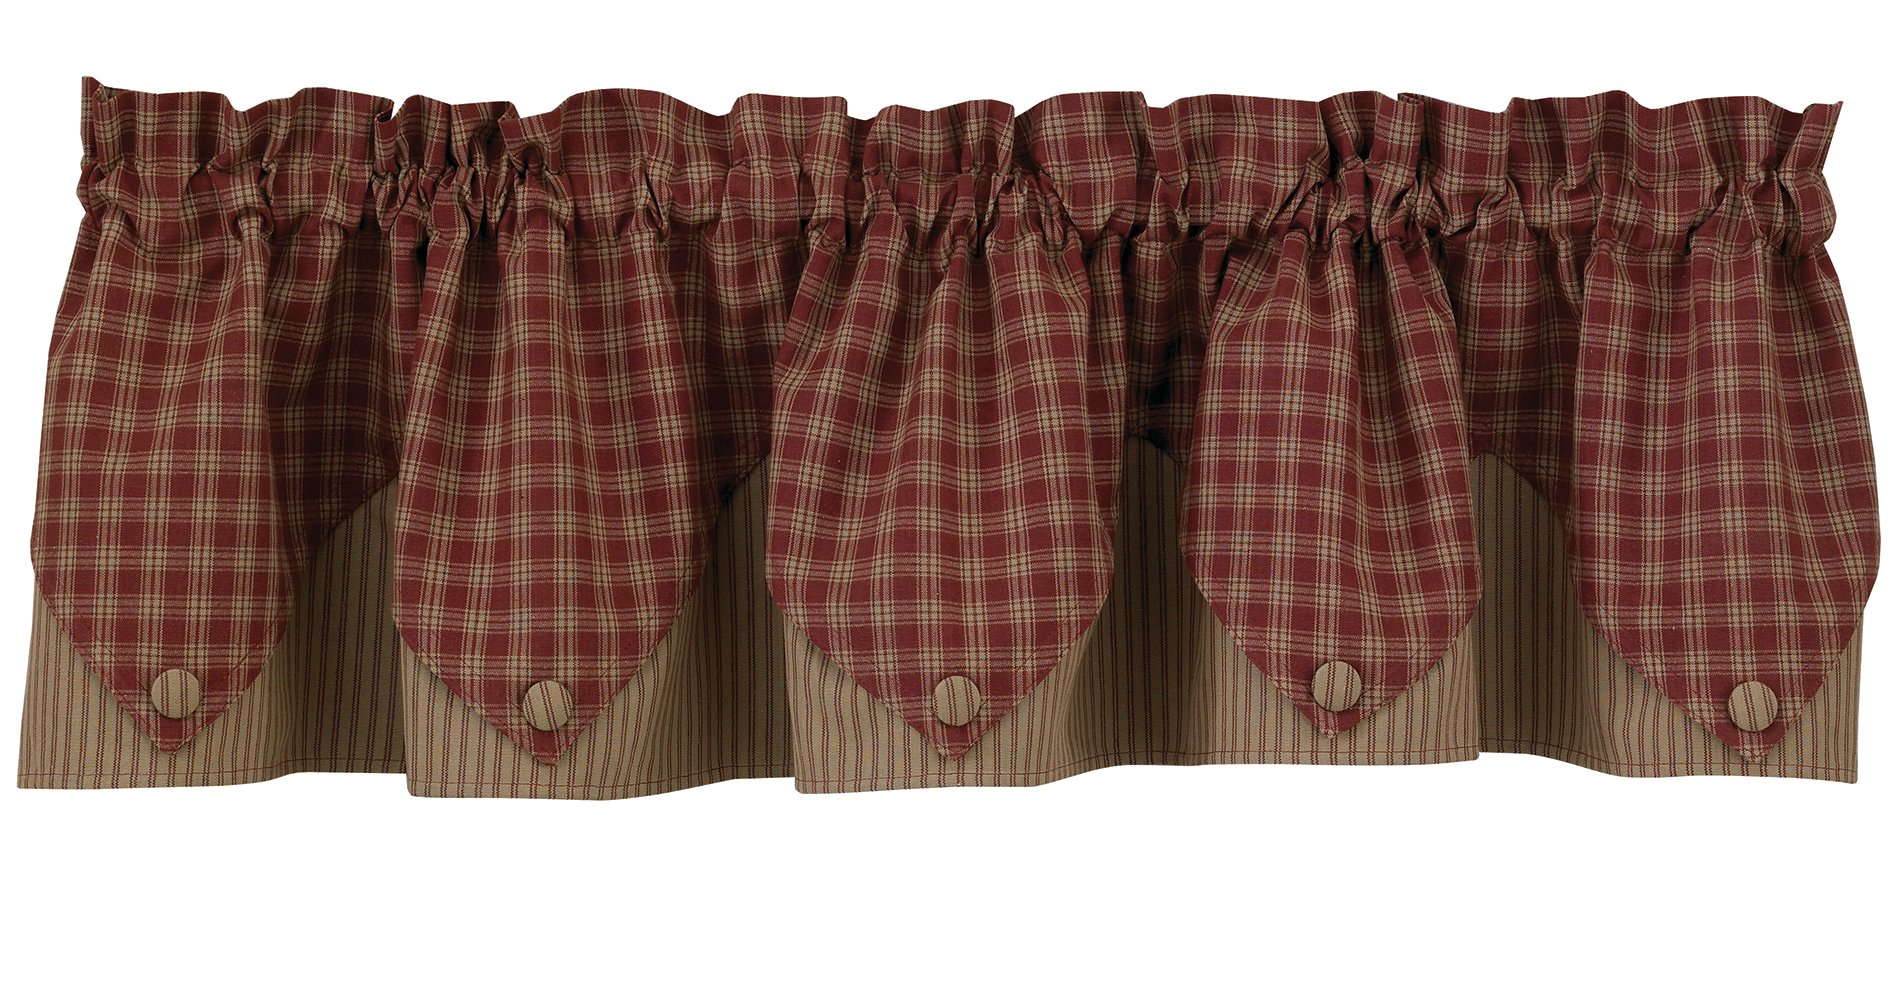 Sturbridge Lined Point Valance - Wine (72'' wide x 15'' long) by Park Designs